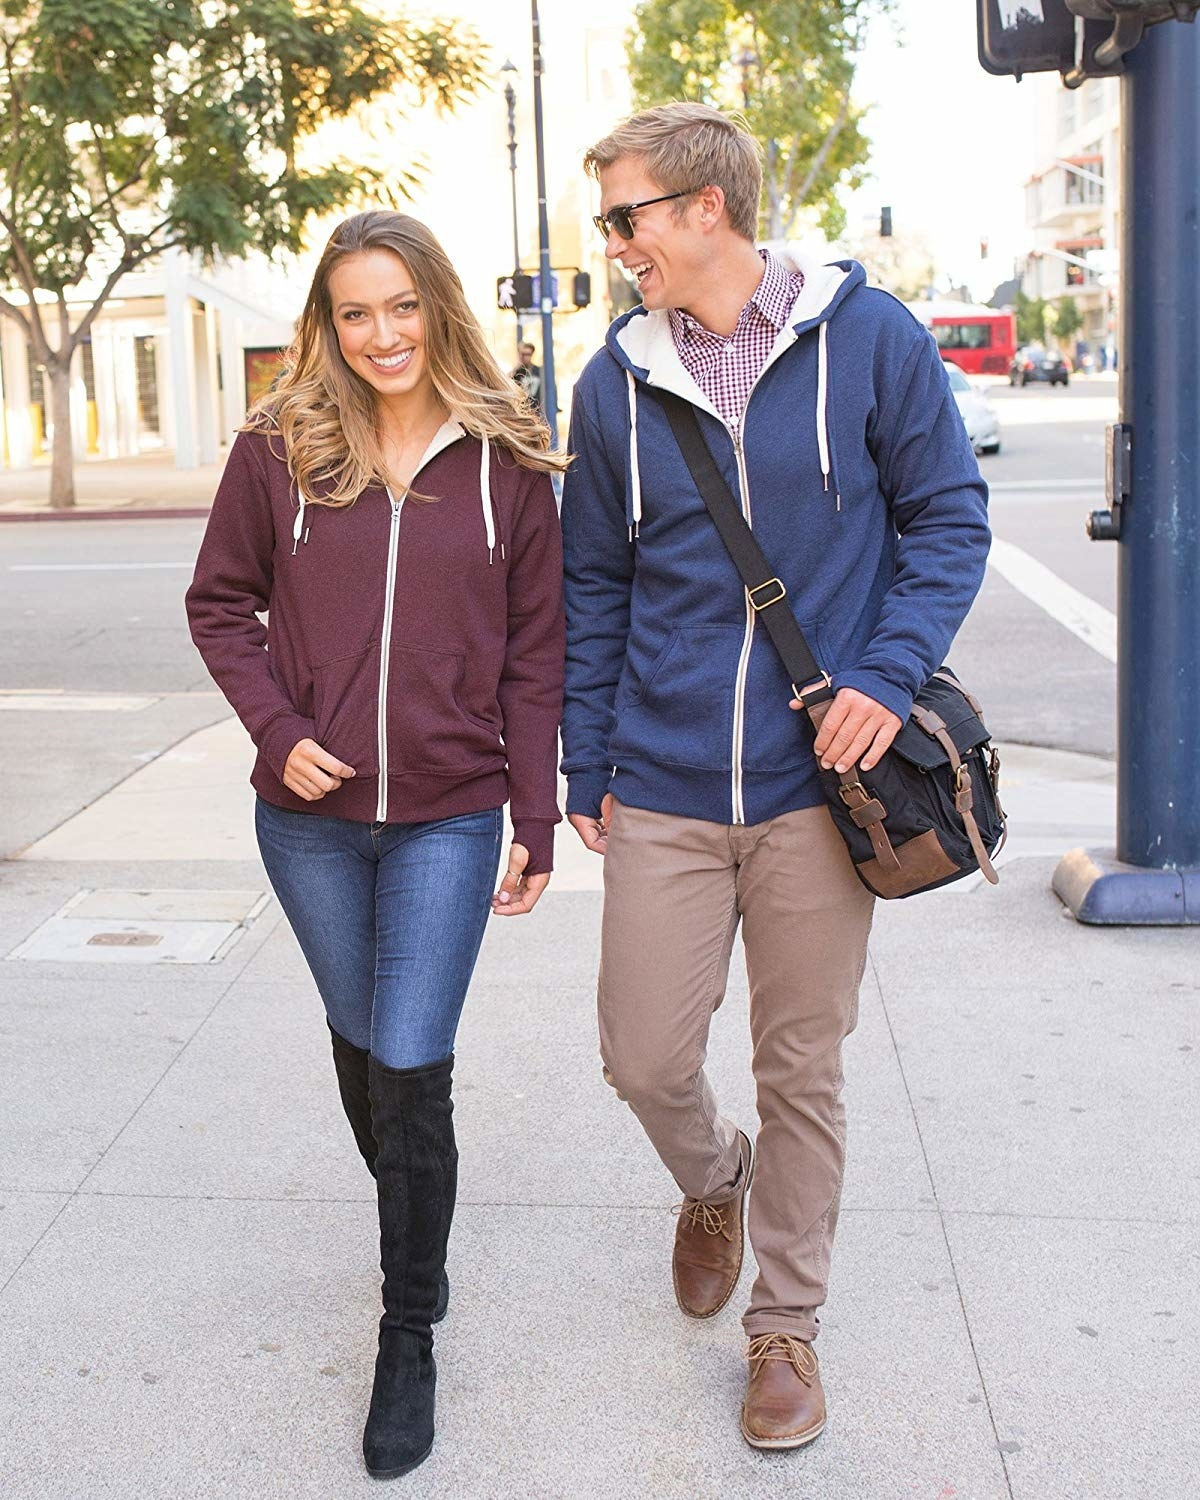 Two models in the sweatshirt: one in burgundy and one in blue